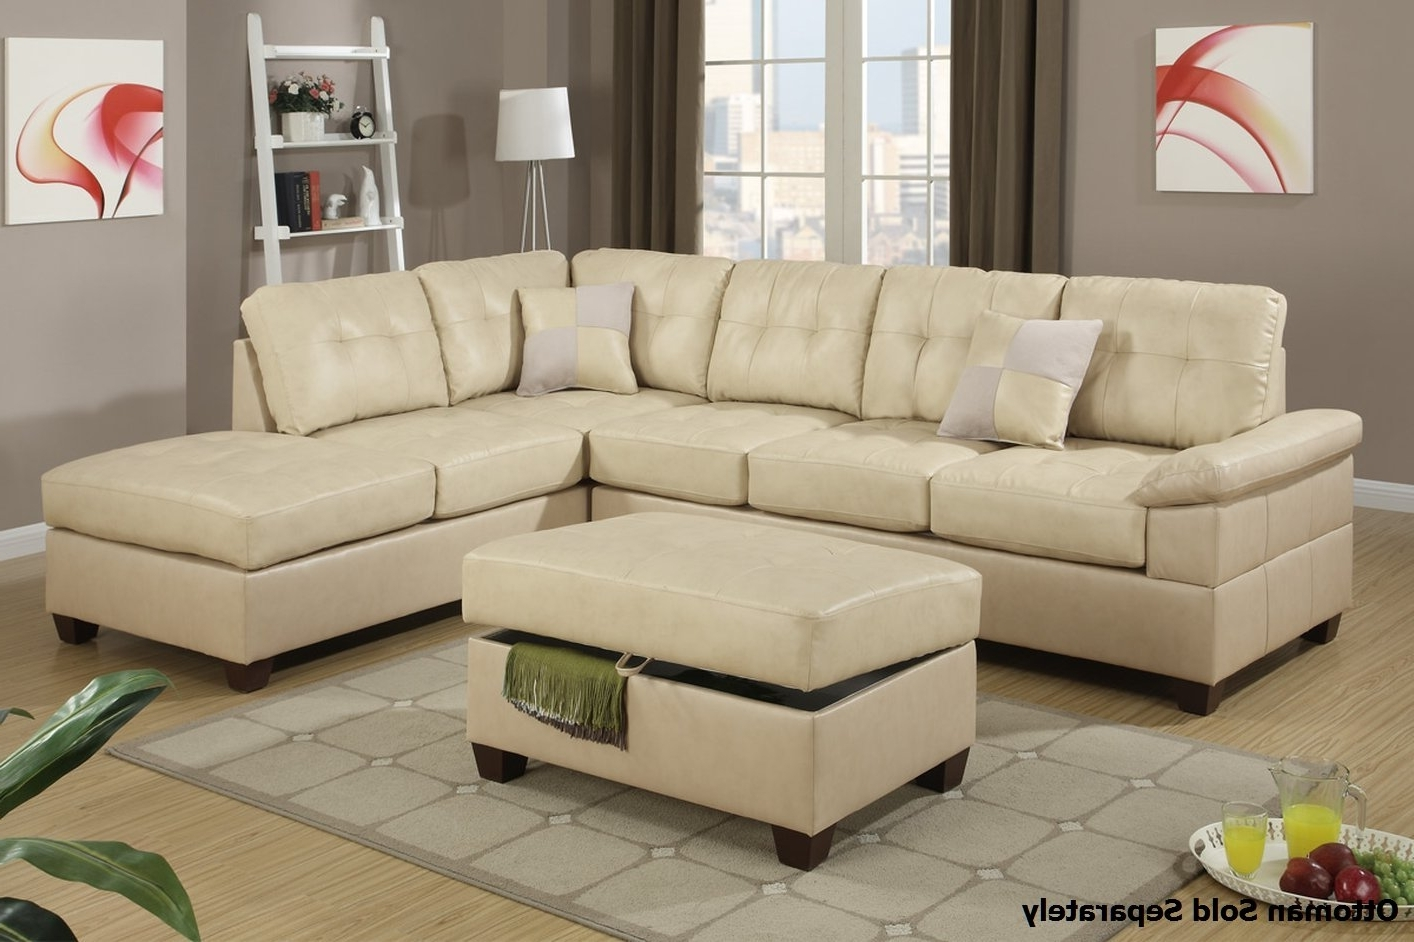 Photo Gallery Of Cream Colored Sofas